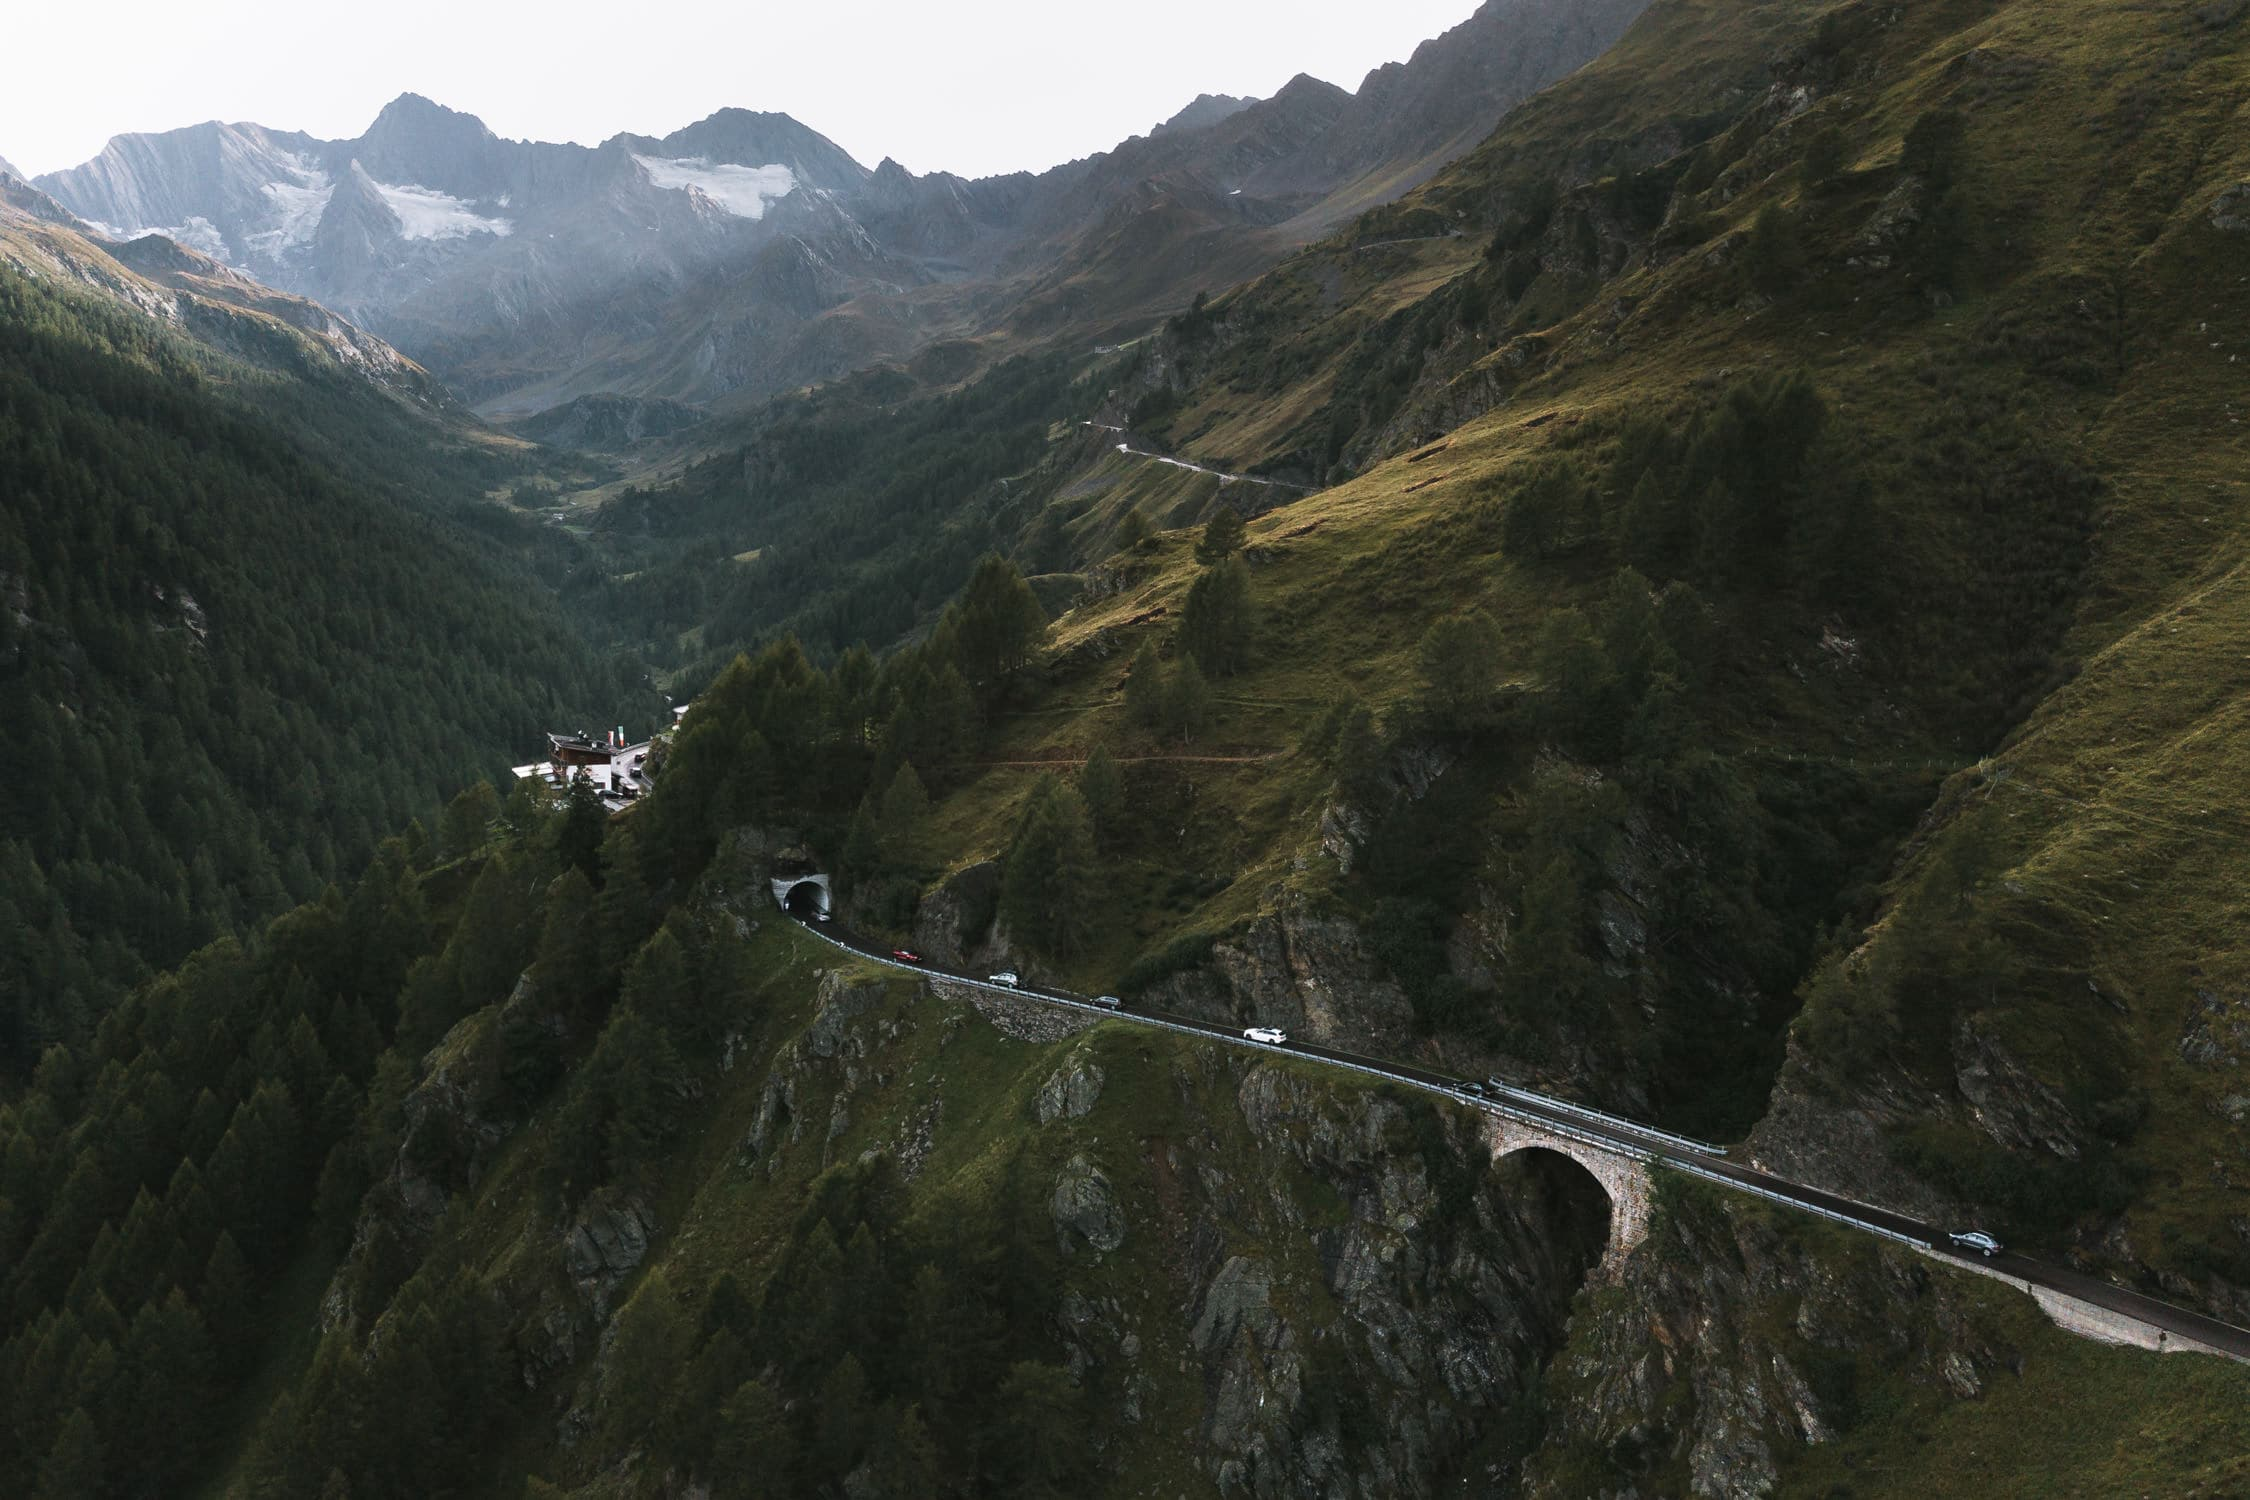 From a roadtrip through the Italian and Swiss alps for Sixt using a BMW X5 to drive through the mountain landscapes by photographer Michael Schauer